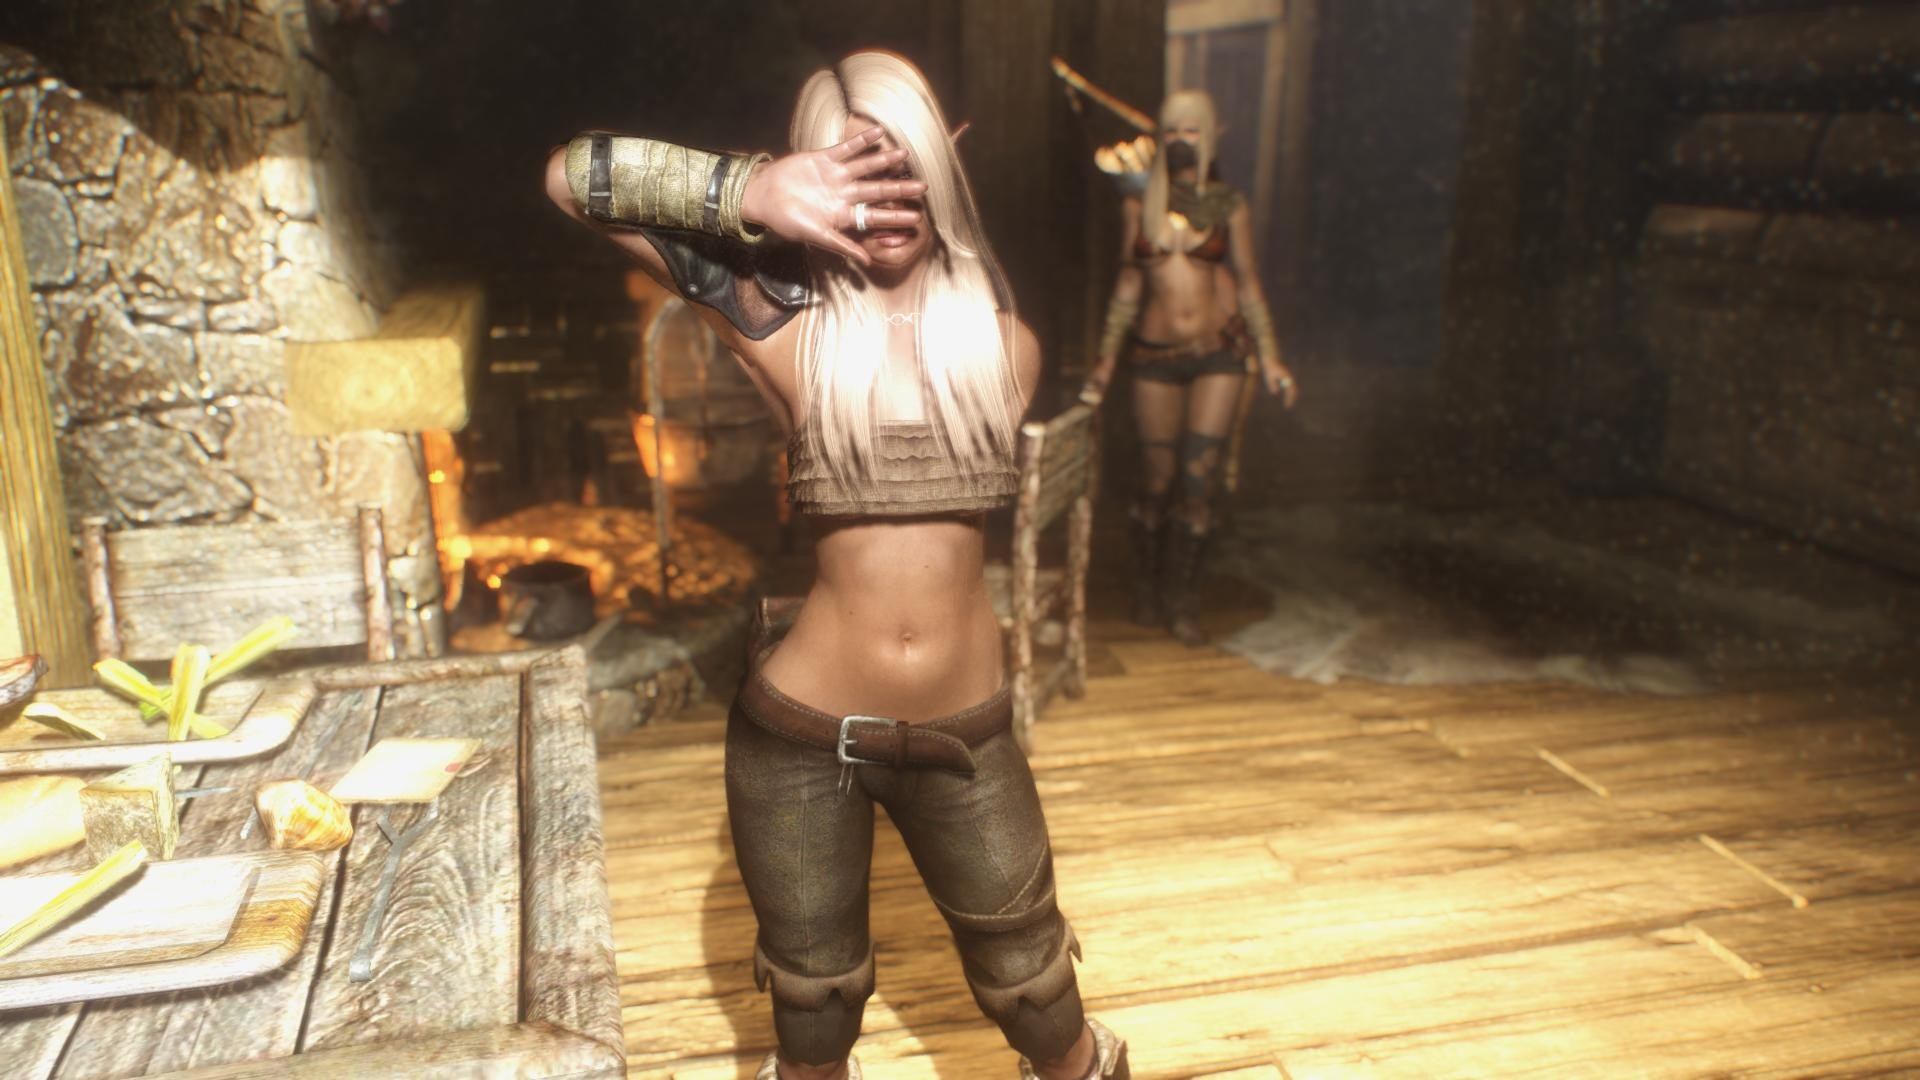 1920x1080 The sexiest girl in Skyrim